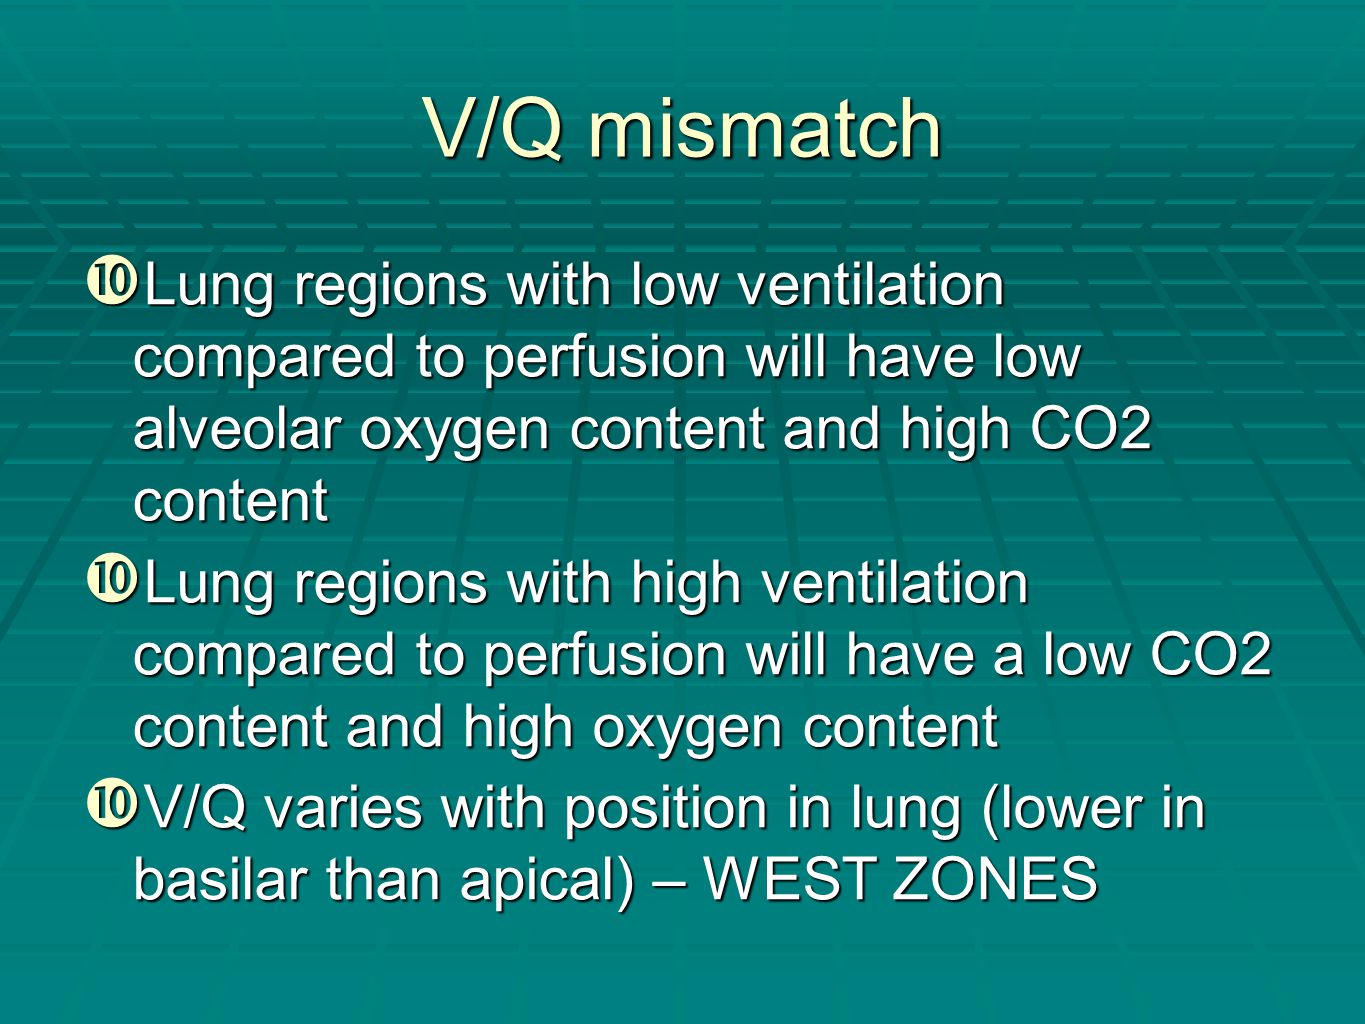 V/Q mismatch Lung regions with low ventilation compared to perfusion will have low alveolar oxygen content and high CO2 content.